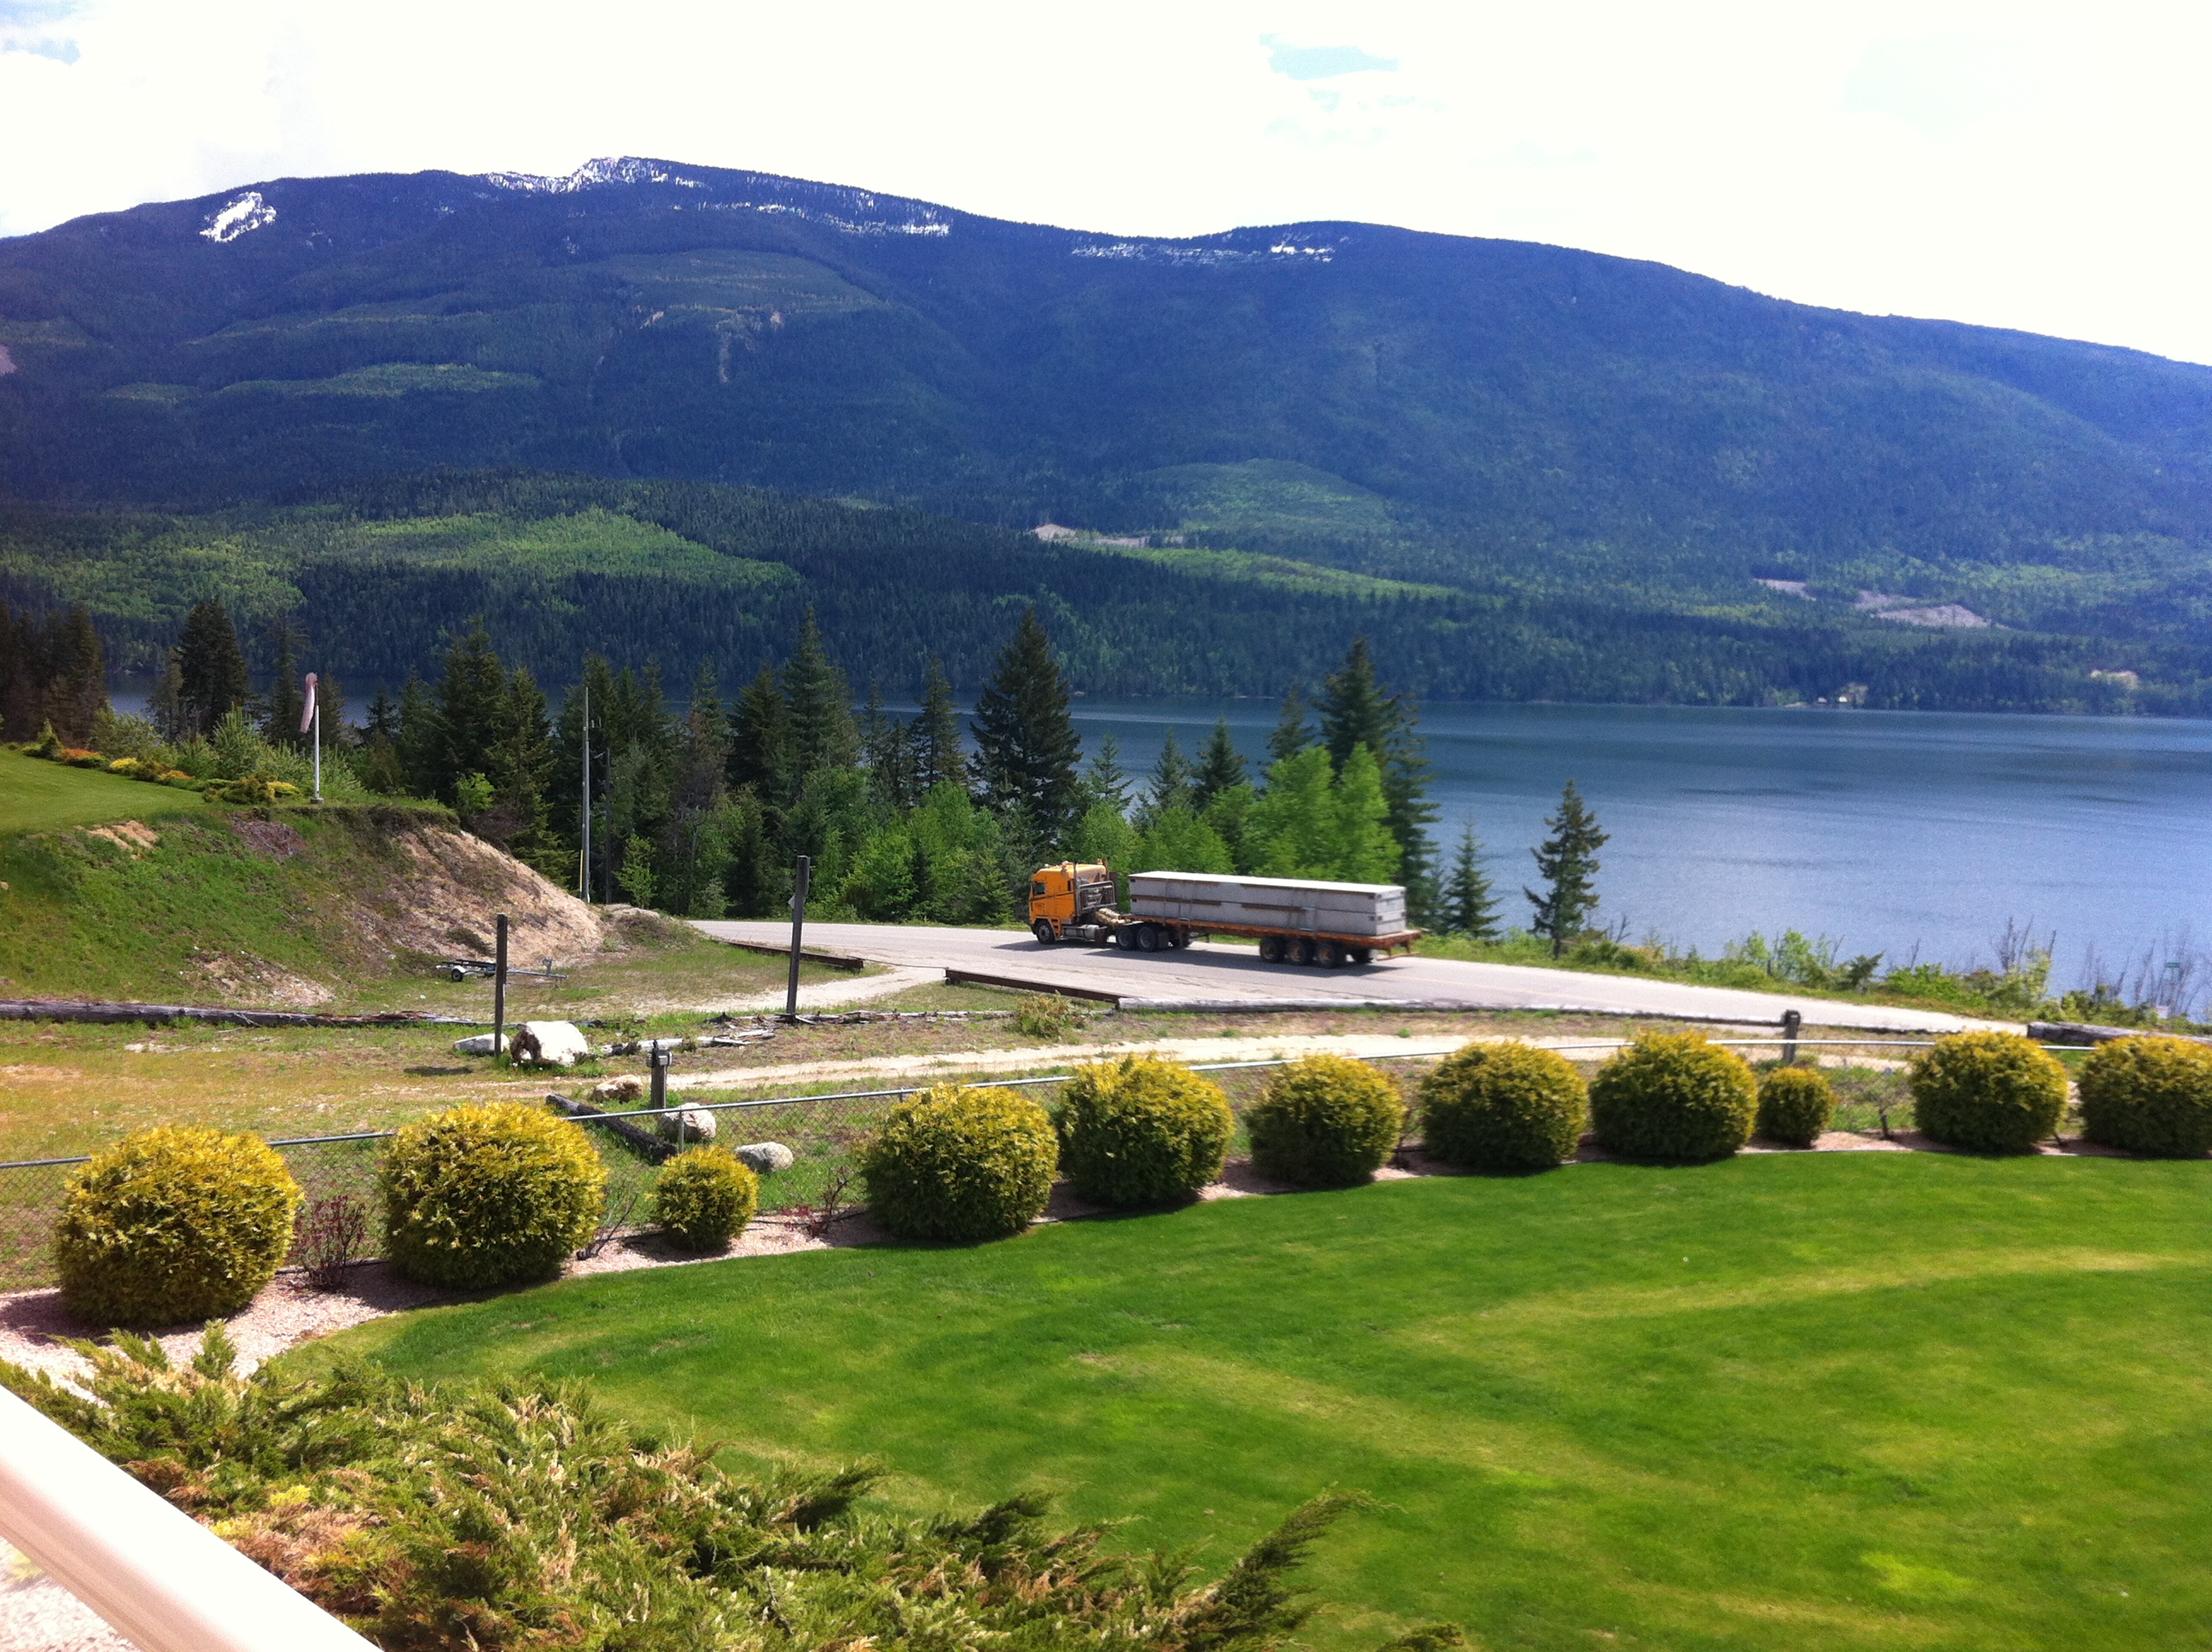 The first trucks arriving with concrete marina blocks for the new Mabel Lake Marina.